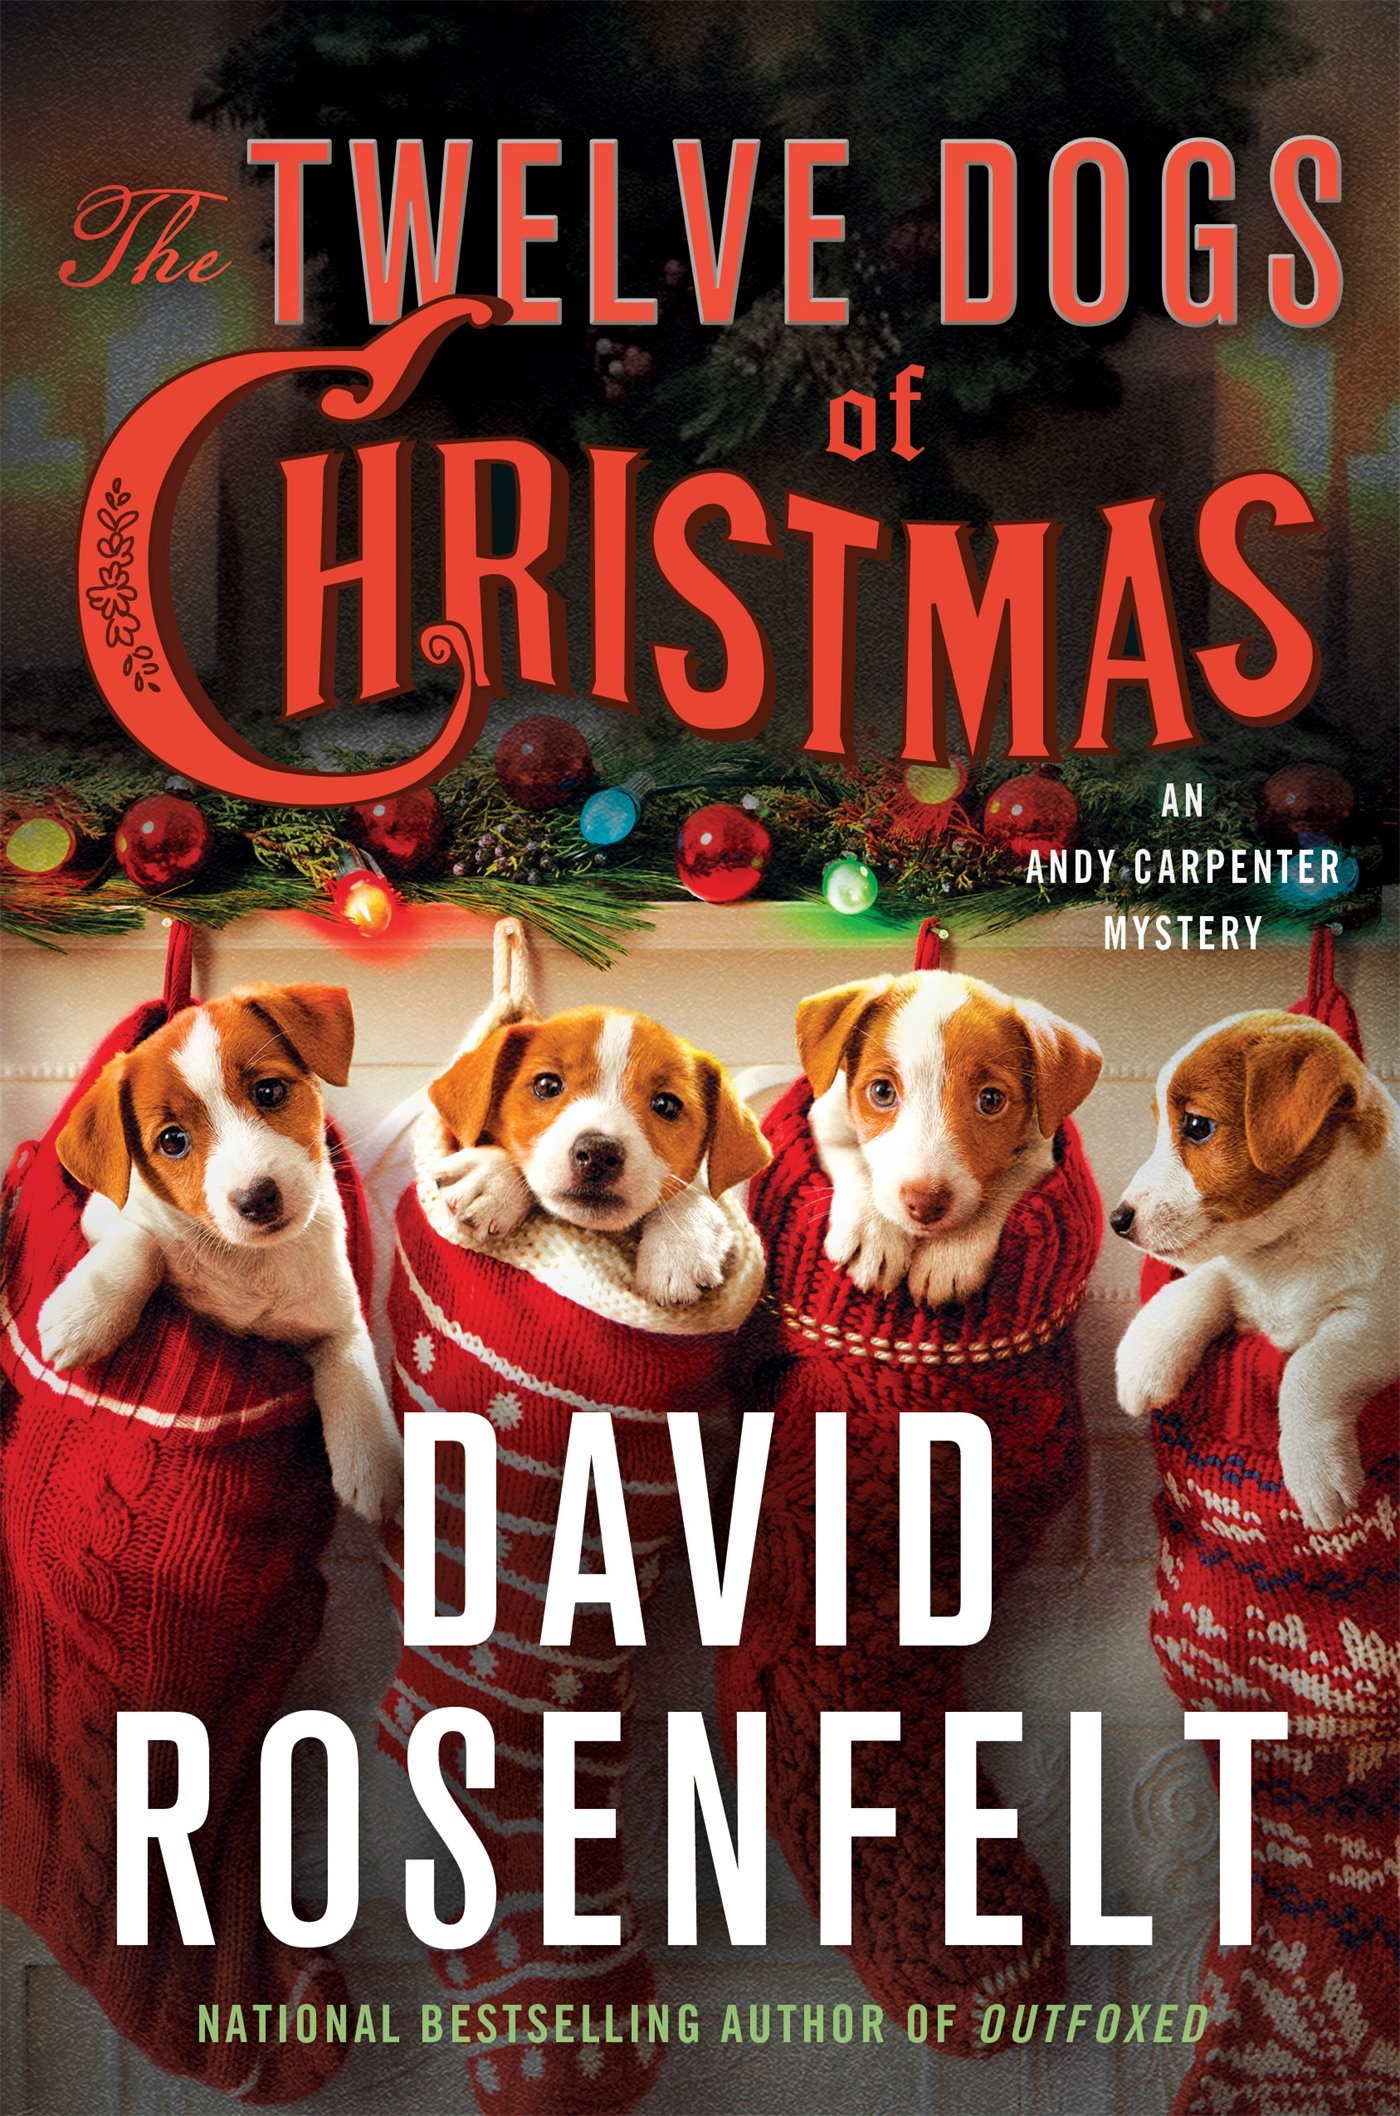 53653ce7 Amazon.com: The Twelve Dogs of Christmas: An Andy Carpenter Mystery ...